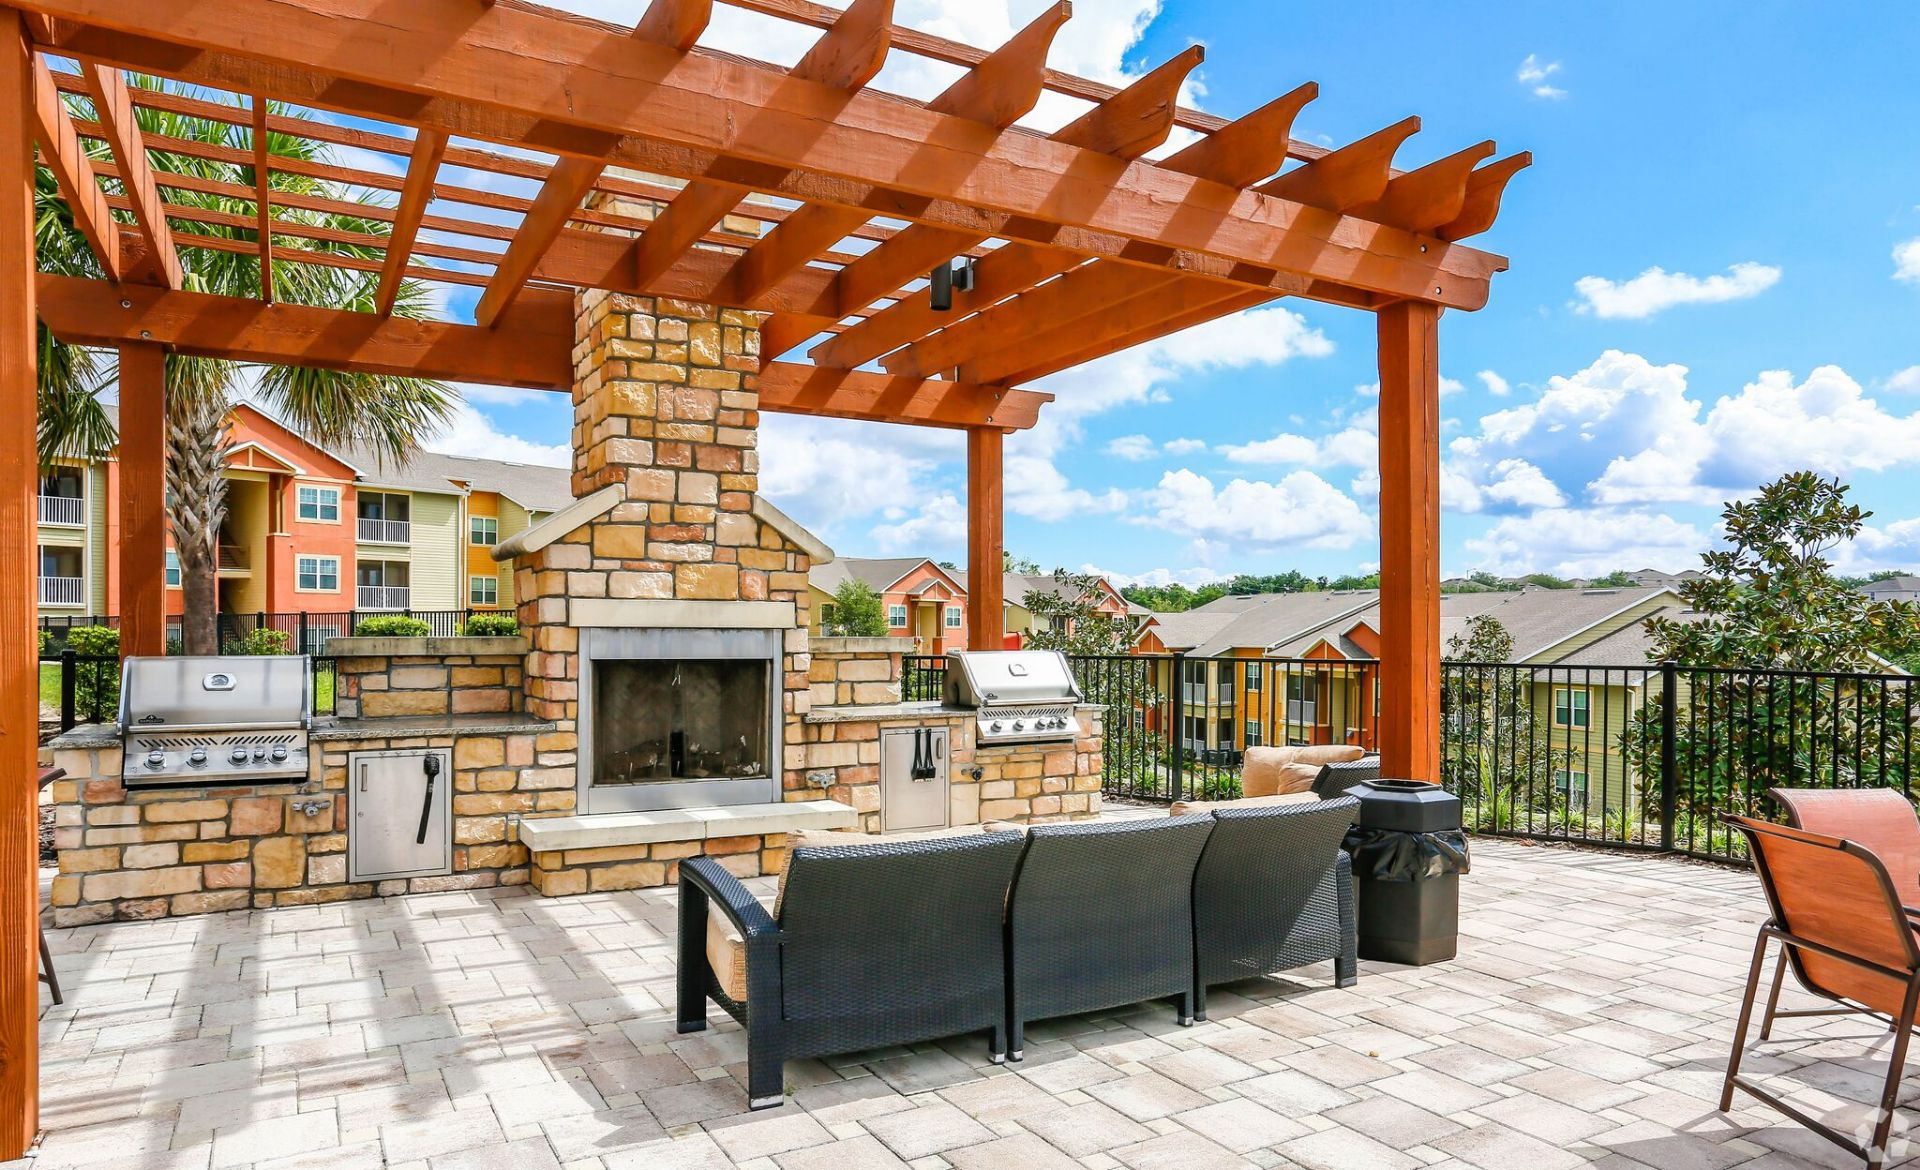 Outdoor lounge area with seating, grills, and fireplace